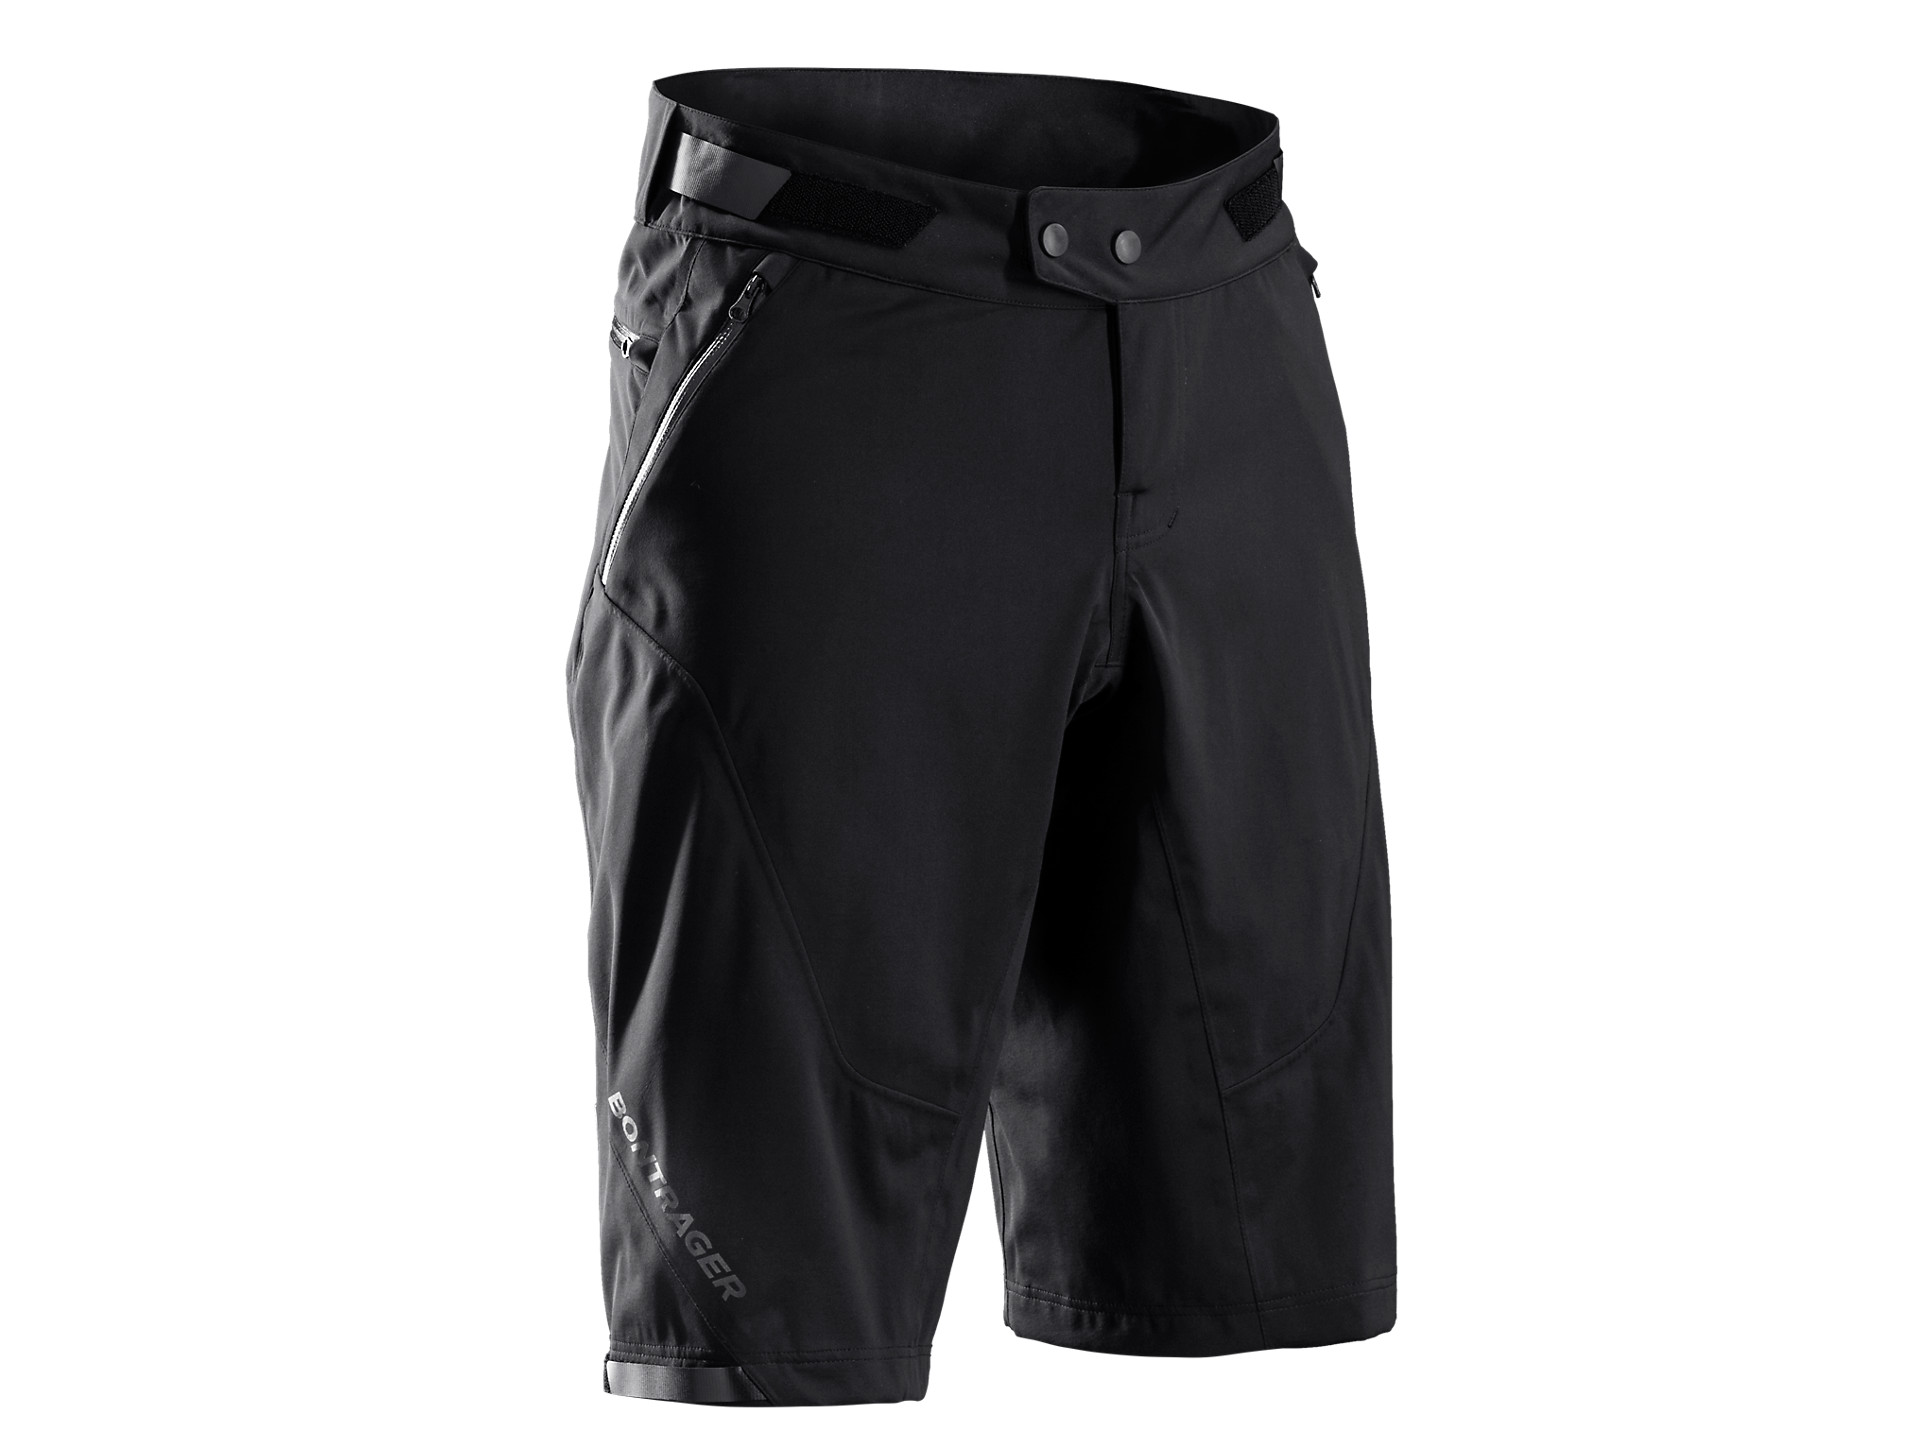 More Mile 2 In 1 Baggy Cycle Short Warm And Windproof Shorts Men's Clothing